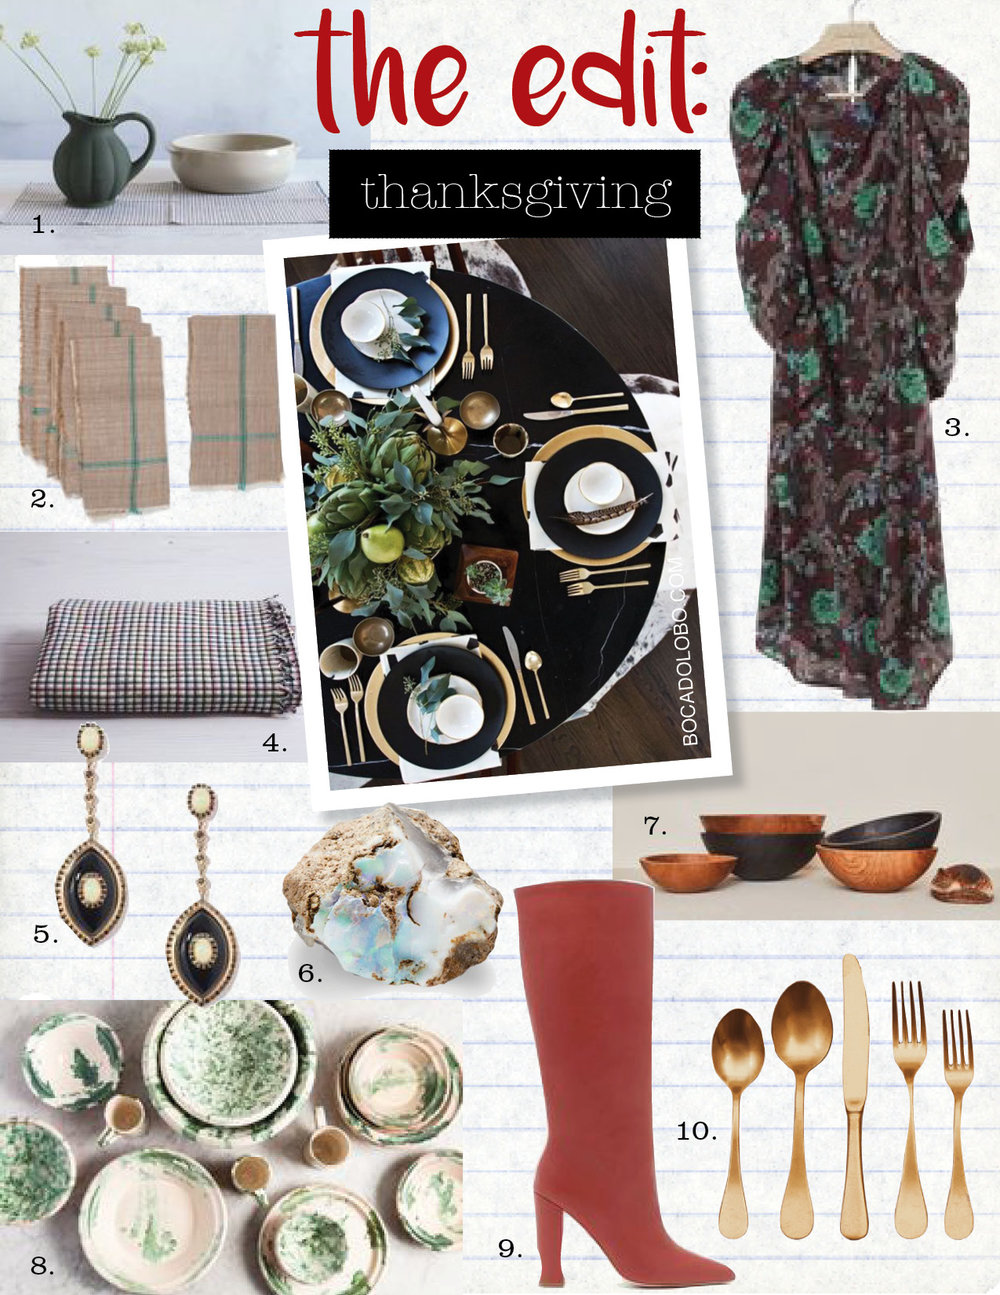 1. manufacture de digoin pumpkin pitcher, $125,  nickeykehoe.com  2. khaki napkin set, $52,  shoppe.amberinteriordesign.com  3. isabel marant midi dress, $1160,  isabelmarant.com  4. heather taylor home hearth tablecloth, $258,  nickeykehoe.com  5. marlo laz icon earrings, $6900,  goop.com  6. large ethiopian raw opal, $145,  abchome.com  7. hawkins solid oak bowls, $95-$275,  hawkinsnewyork.com  8. il buco green speckleware mixing bowl, $85,  nickeykehoe.com  9. ulla johnson jerri boot, $950,  ullajohnson.com  10. hudson flatware by hawkins New York, $85,  hawkinsnewyork.com